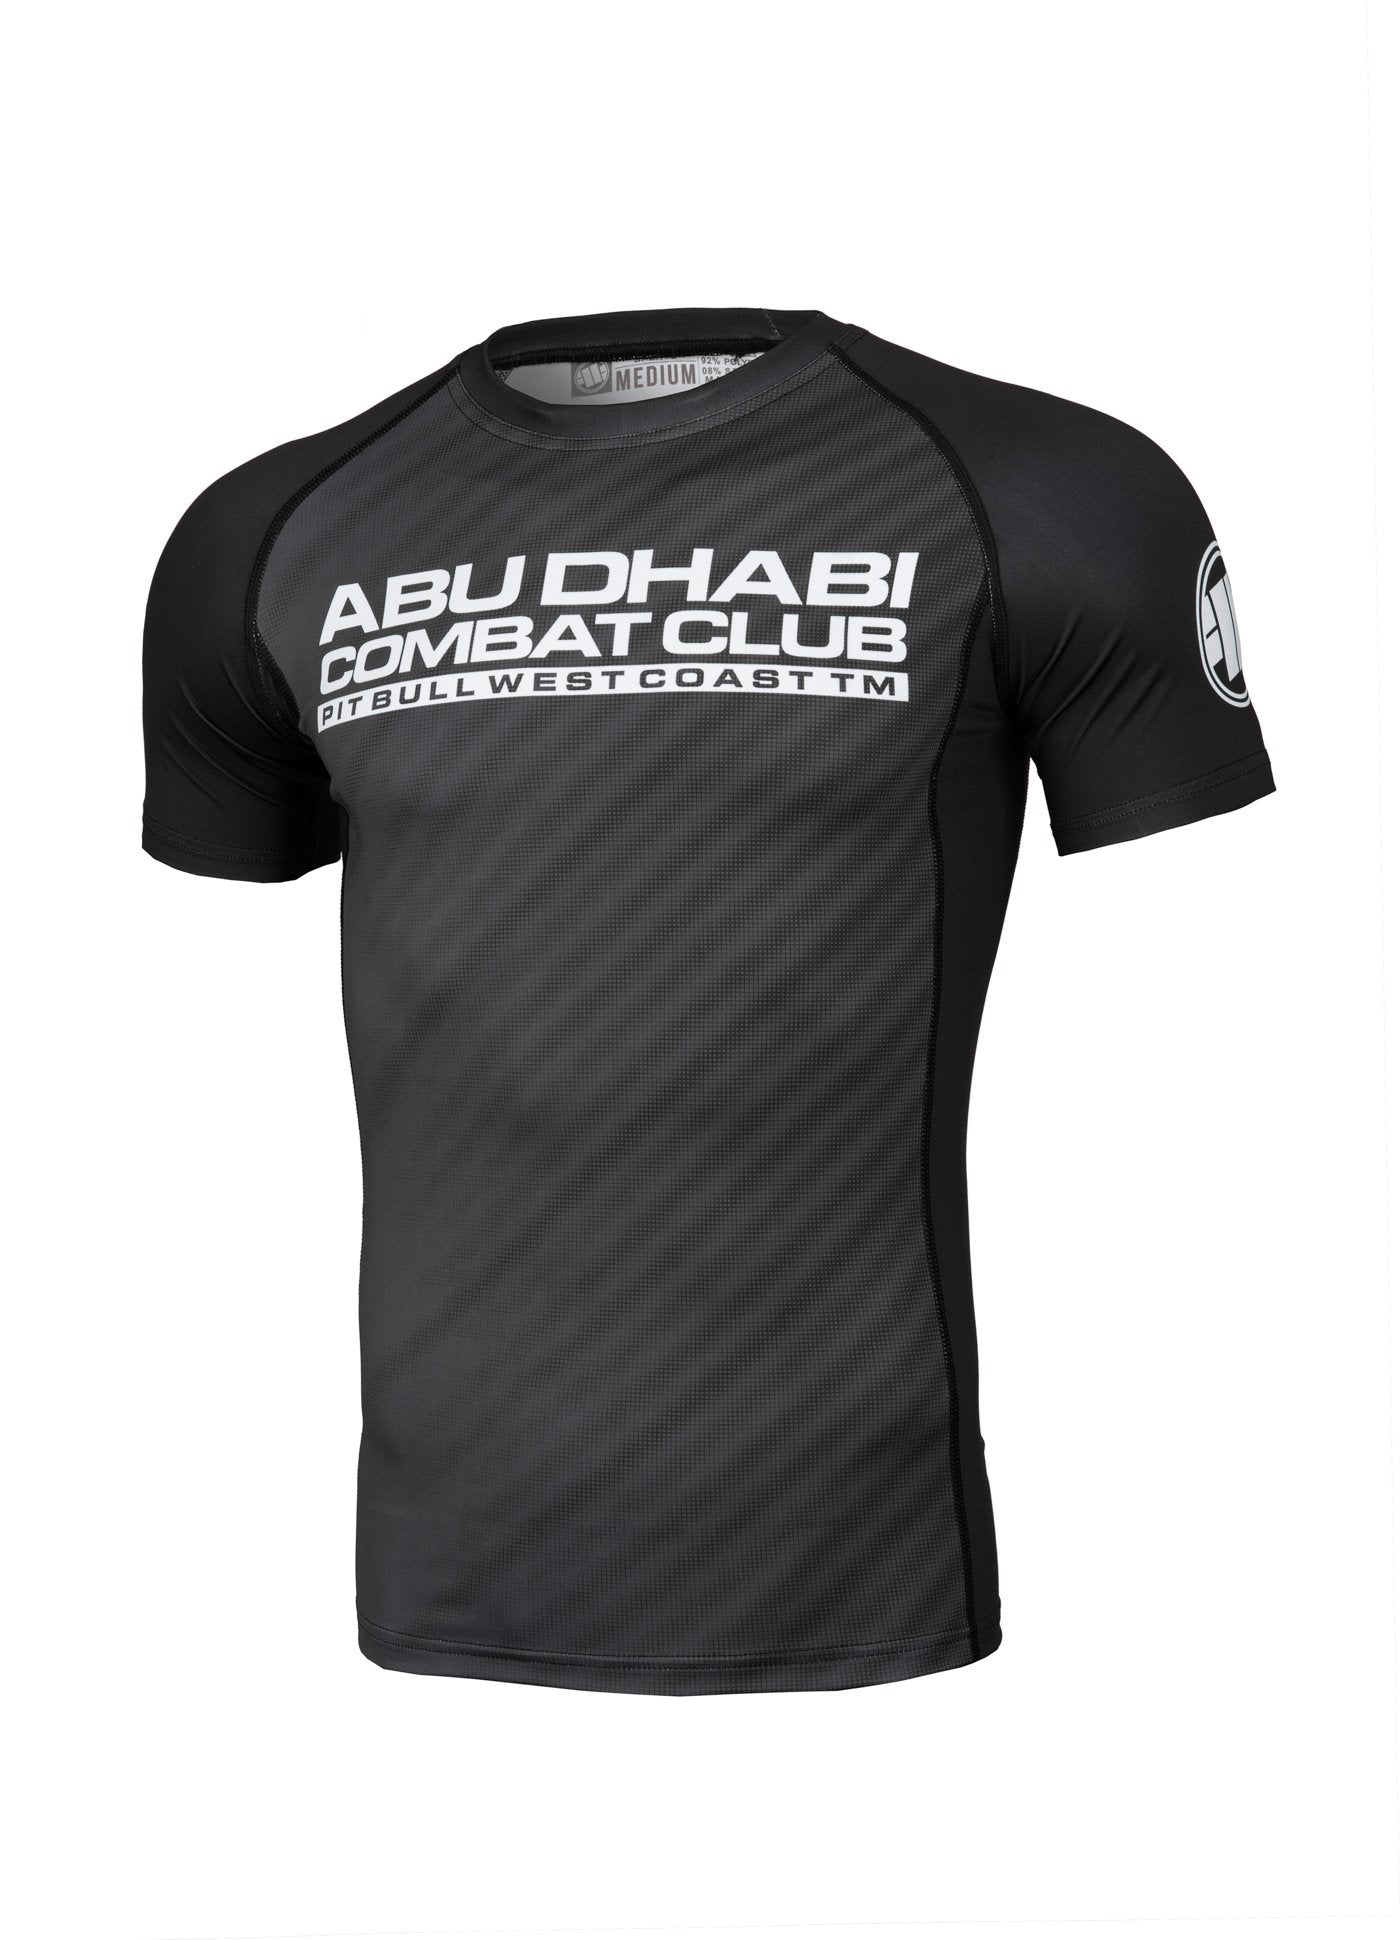 ADCC RASTER Short Sleeve Rashguard - Pitbull West Coast U.S.A.